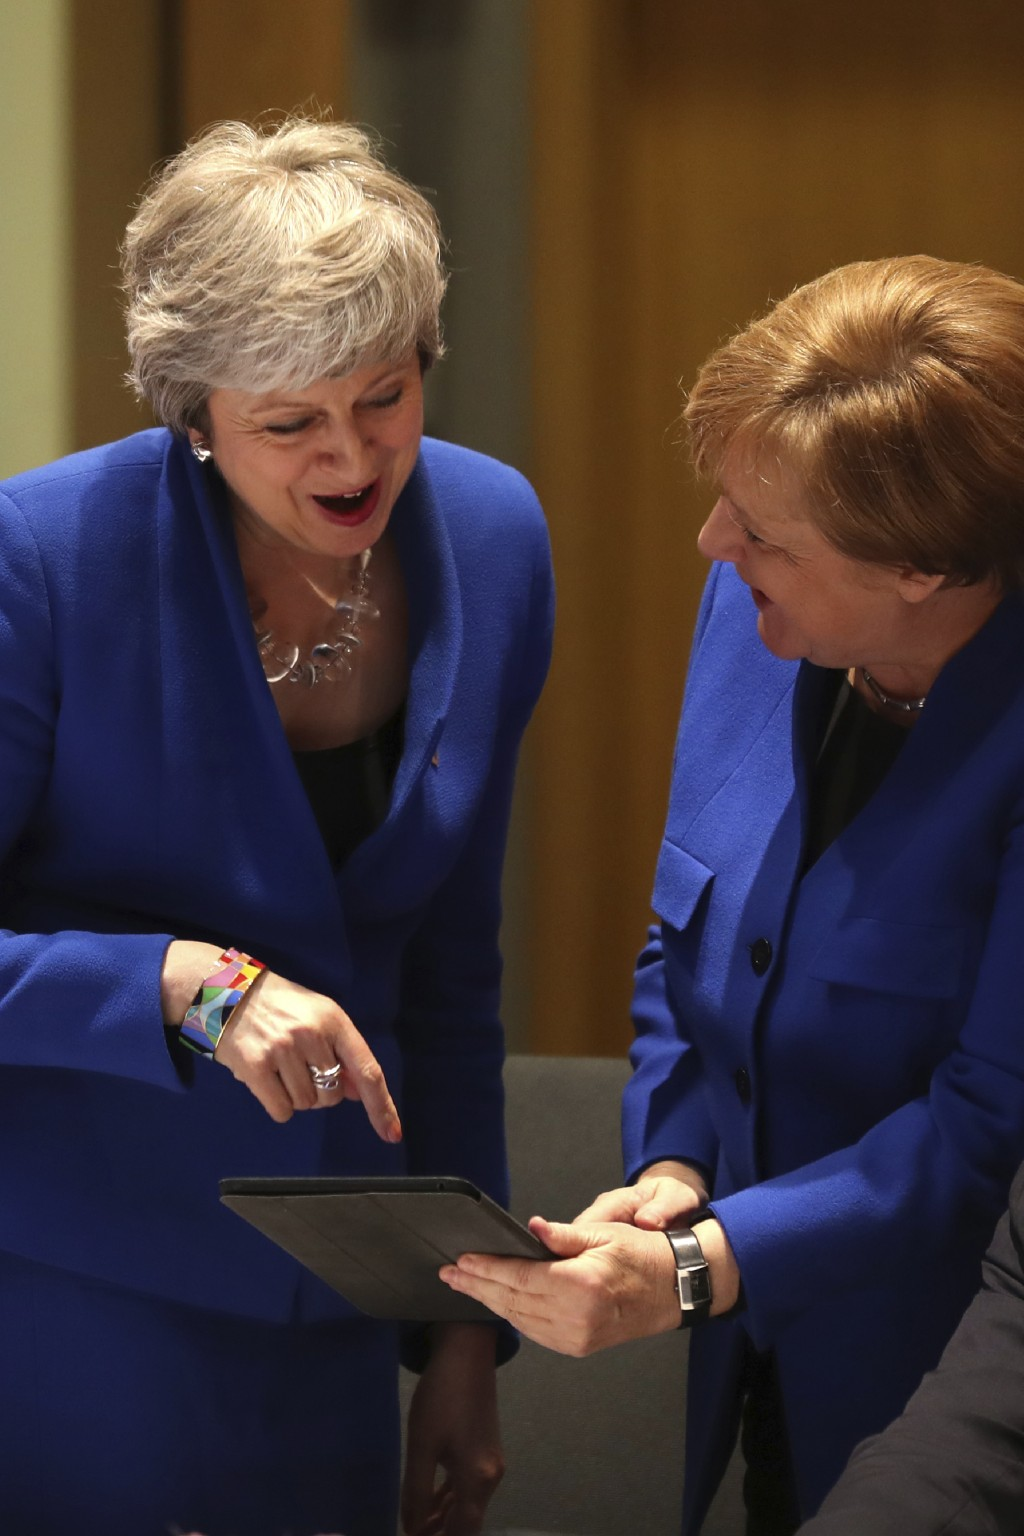 Britain's Prime minister Theresa May, left, and Germany's Chancellor Angela Merkel, right, look at a tablet ahead of a pre-dinner meeting during an EU...